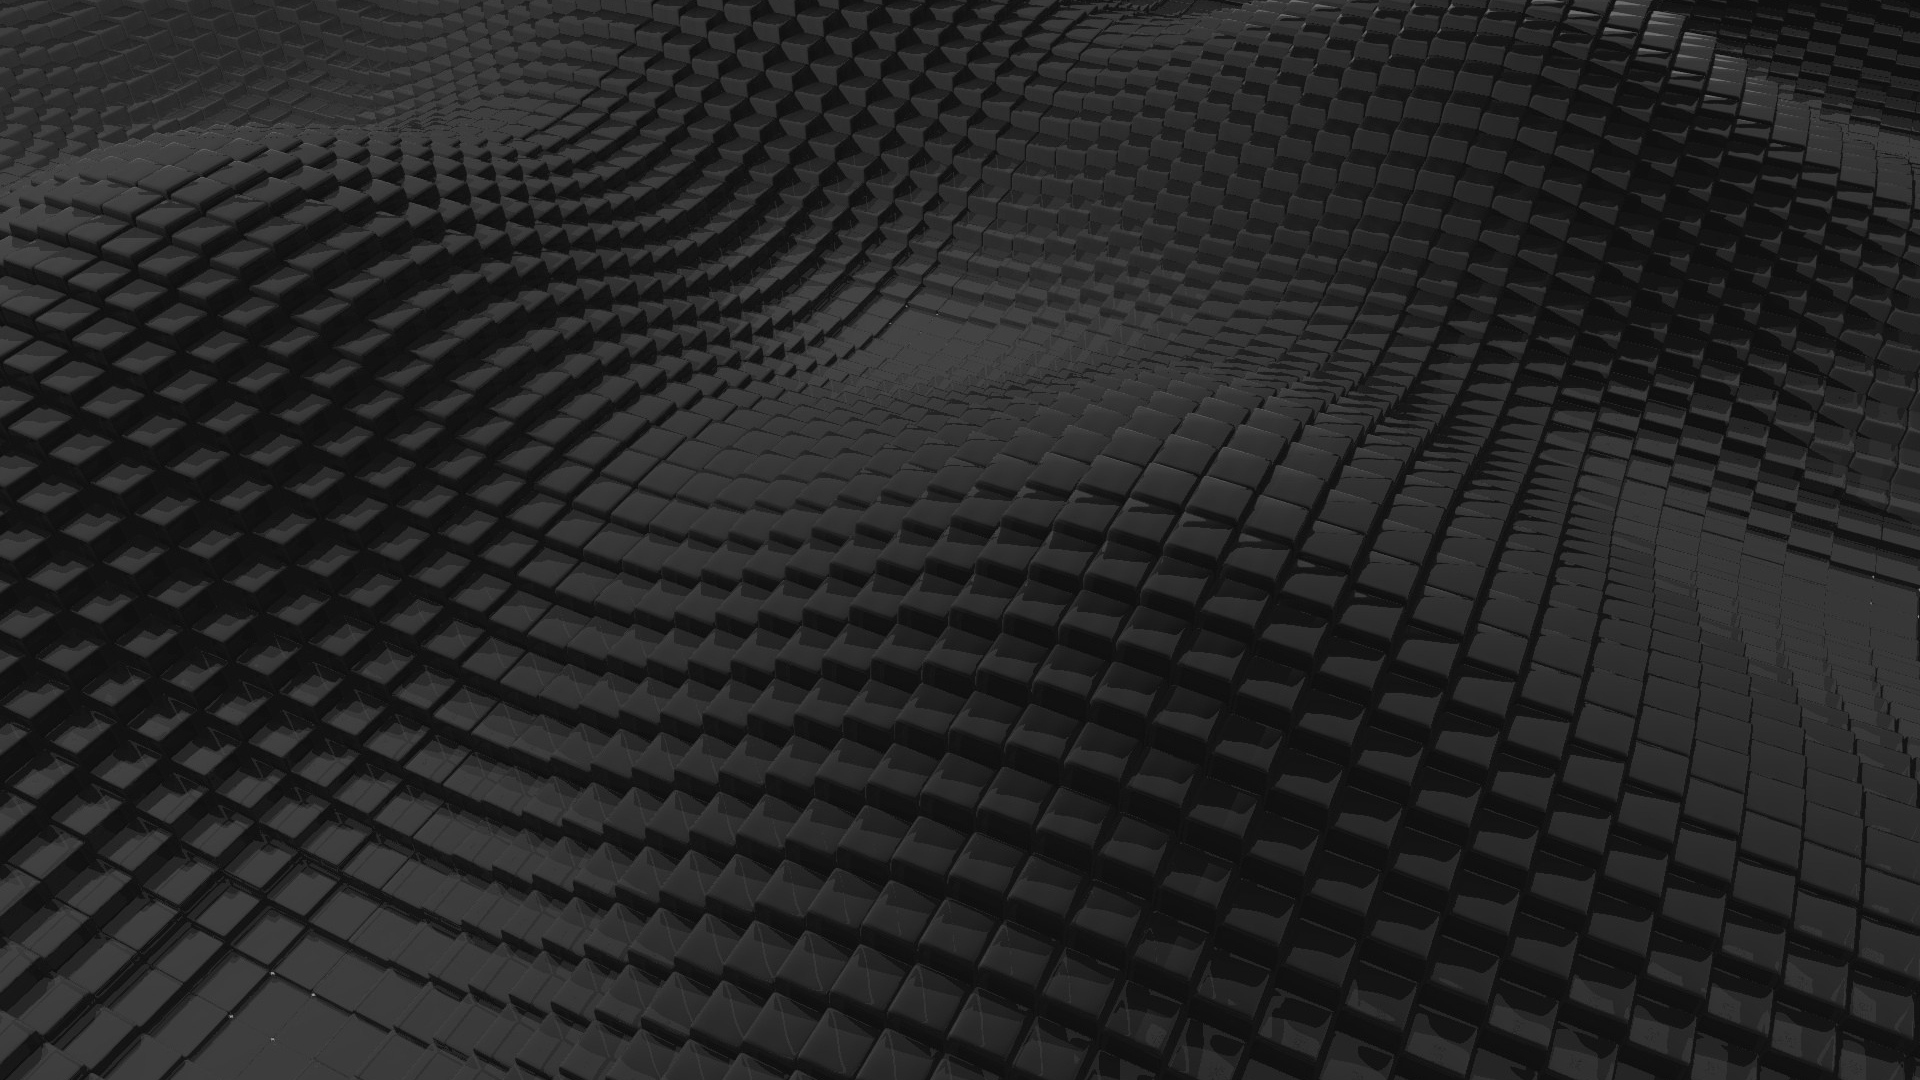 Download Wallpaper 1920x1080 Surface, Rough, Black, Cubic